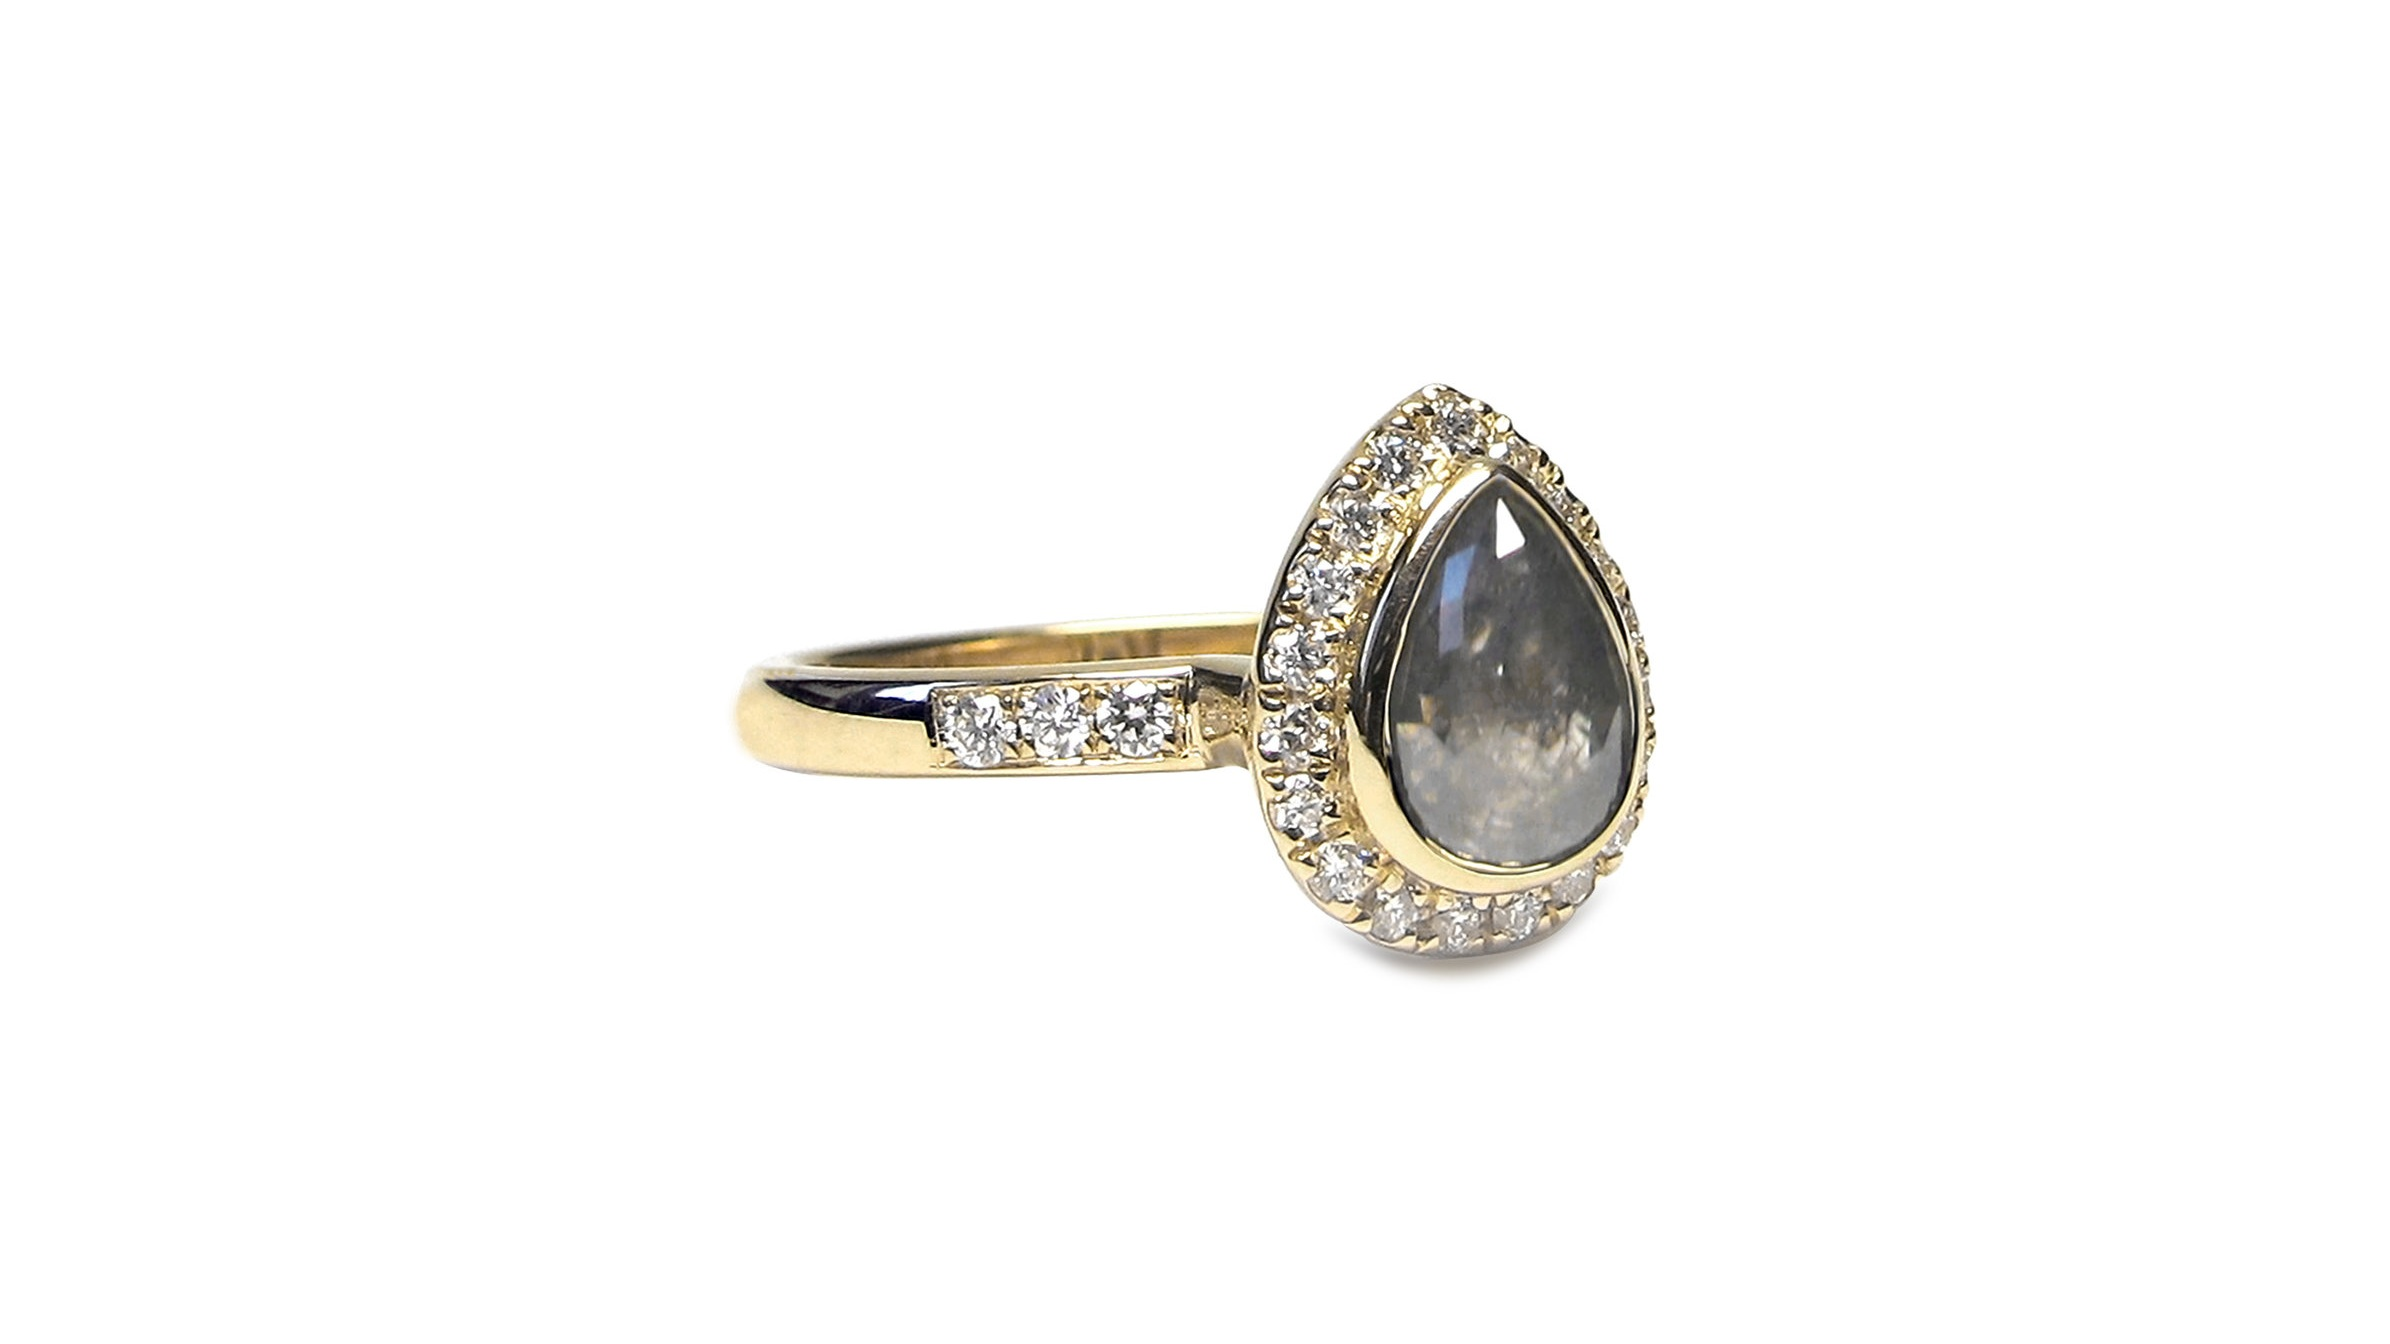 Natural Grey Rose Cut Teardrop Shaped Diamond Bezel Set with Diamond Halo in 14k Yellow Gold